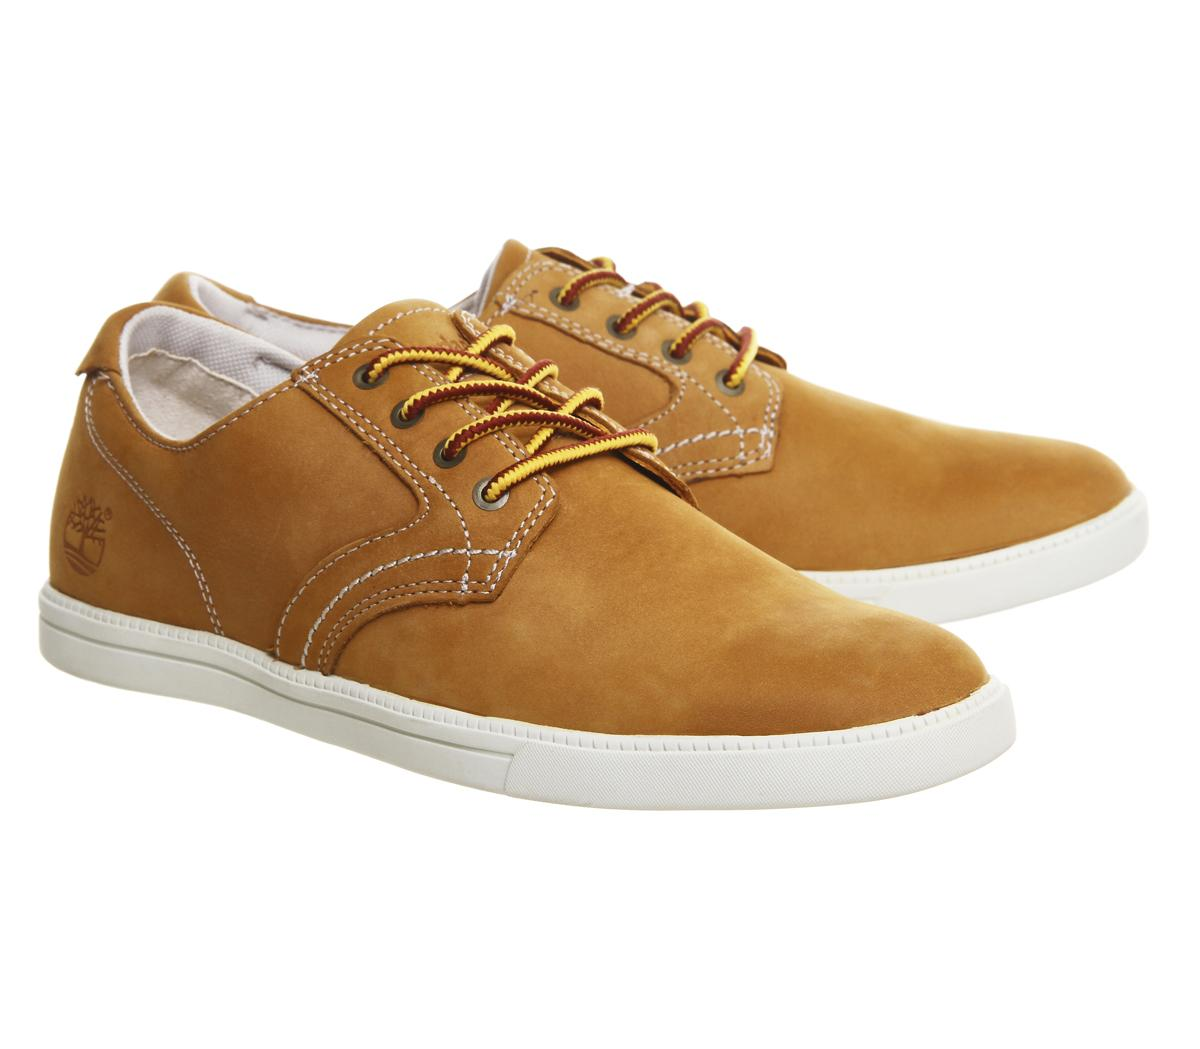 Timberland Fulk Oxford Shoes in Orange for Men